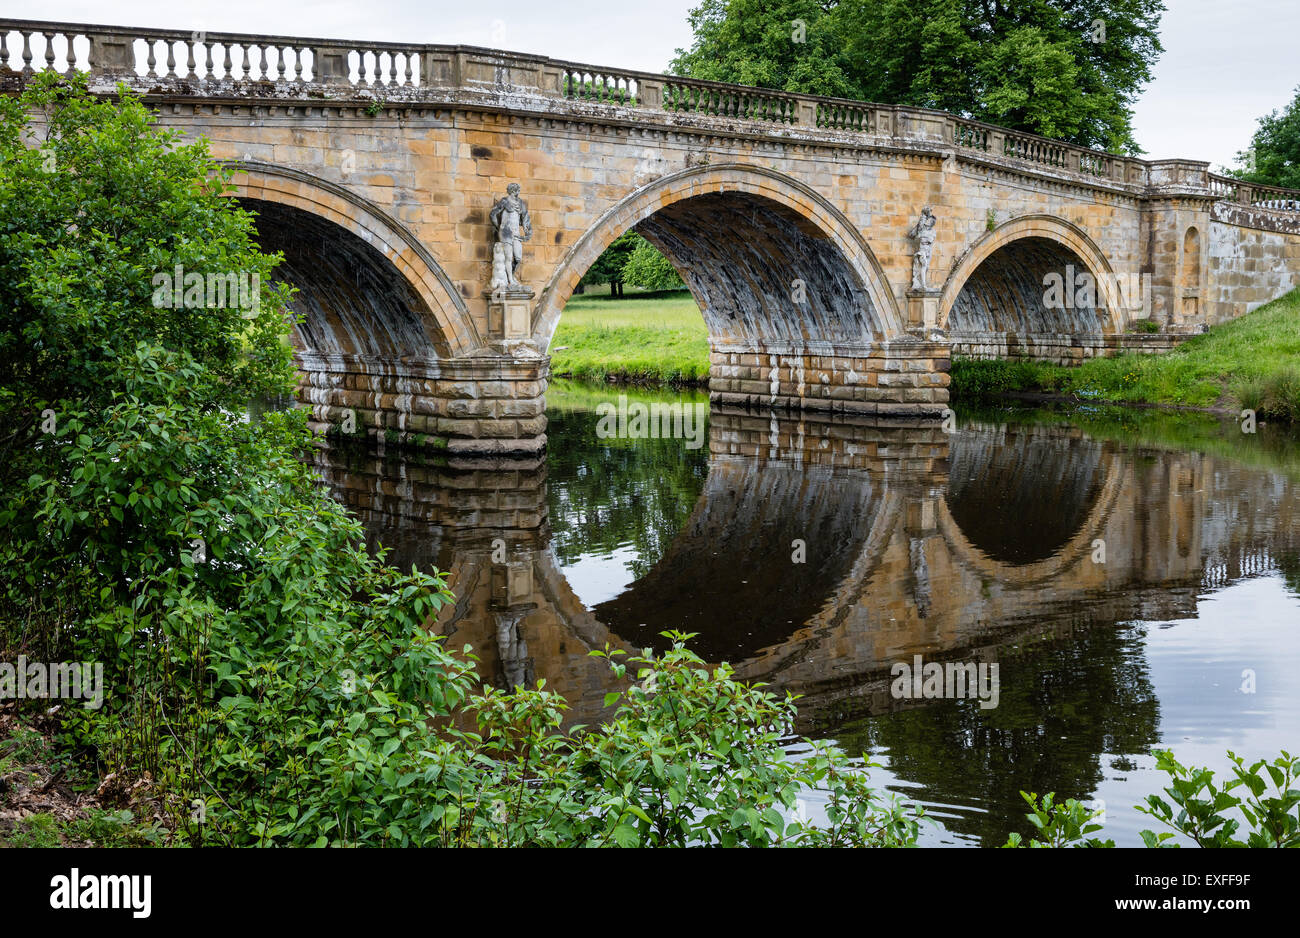 Bridge over the river Derwent at Chatsworth House in the Derbyshire Peak District UK - Stock Image